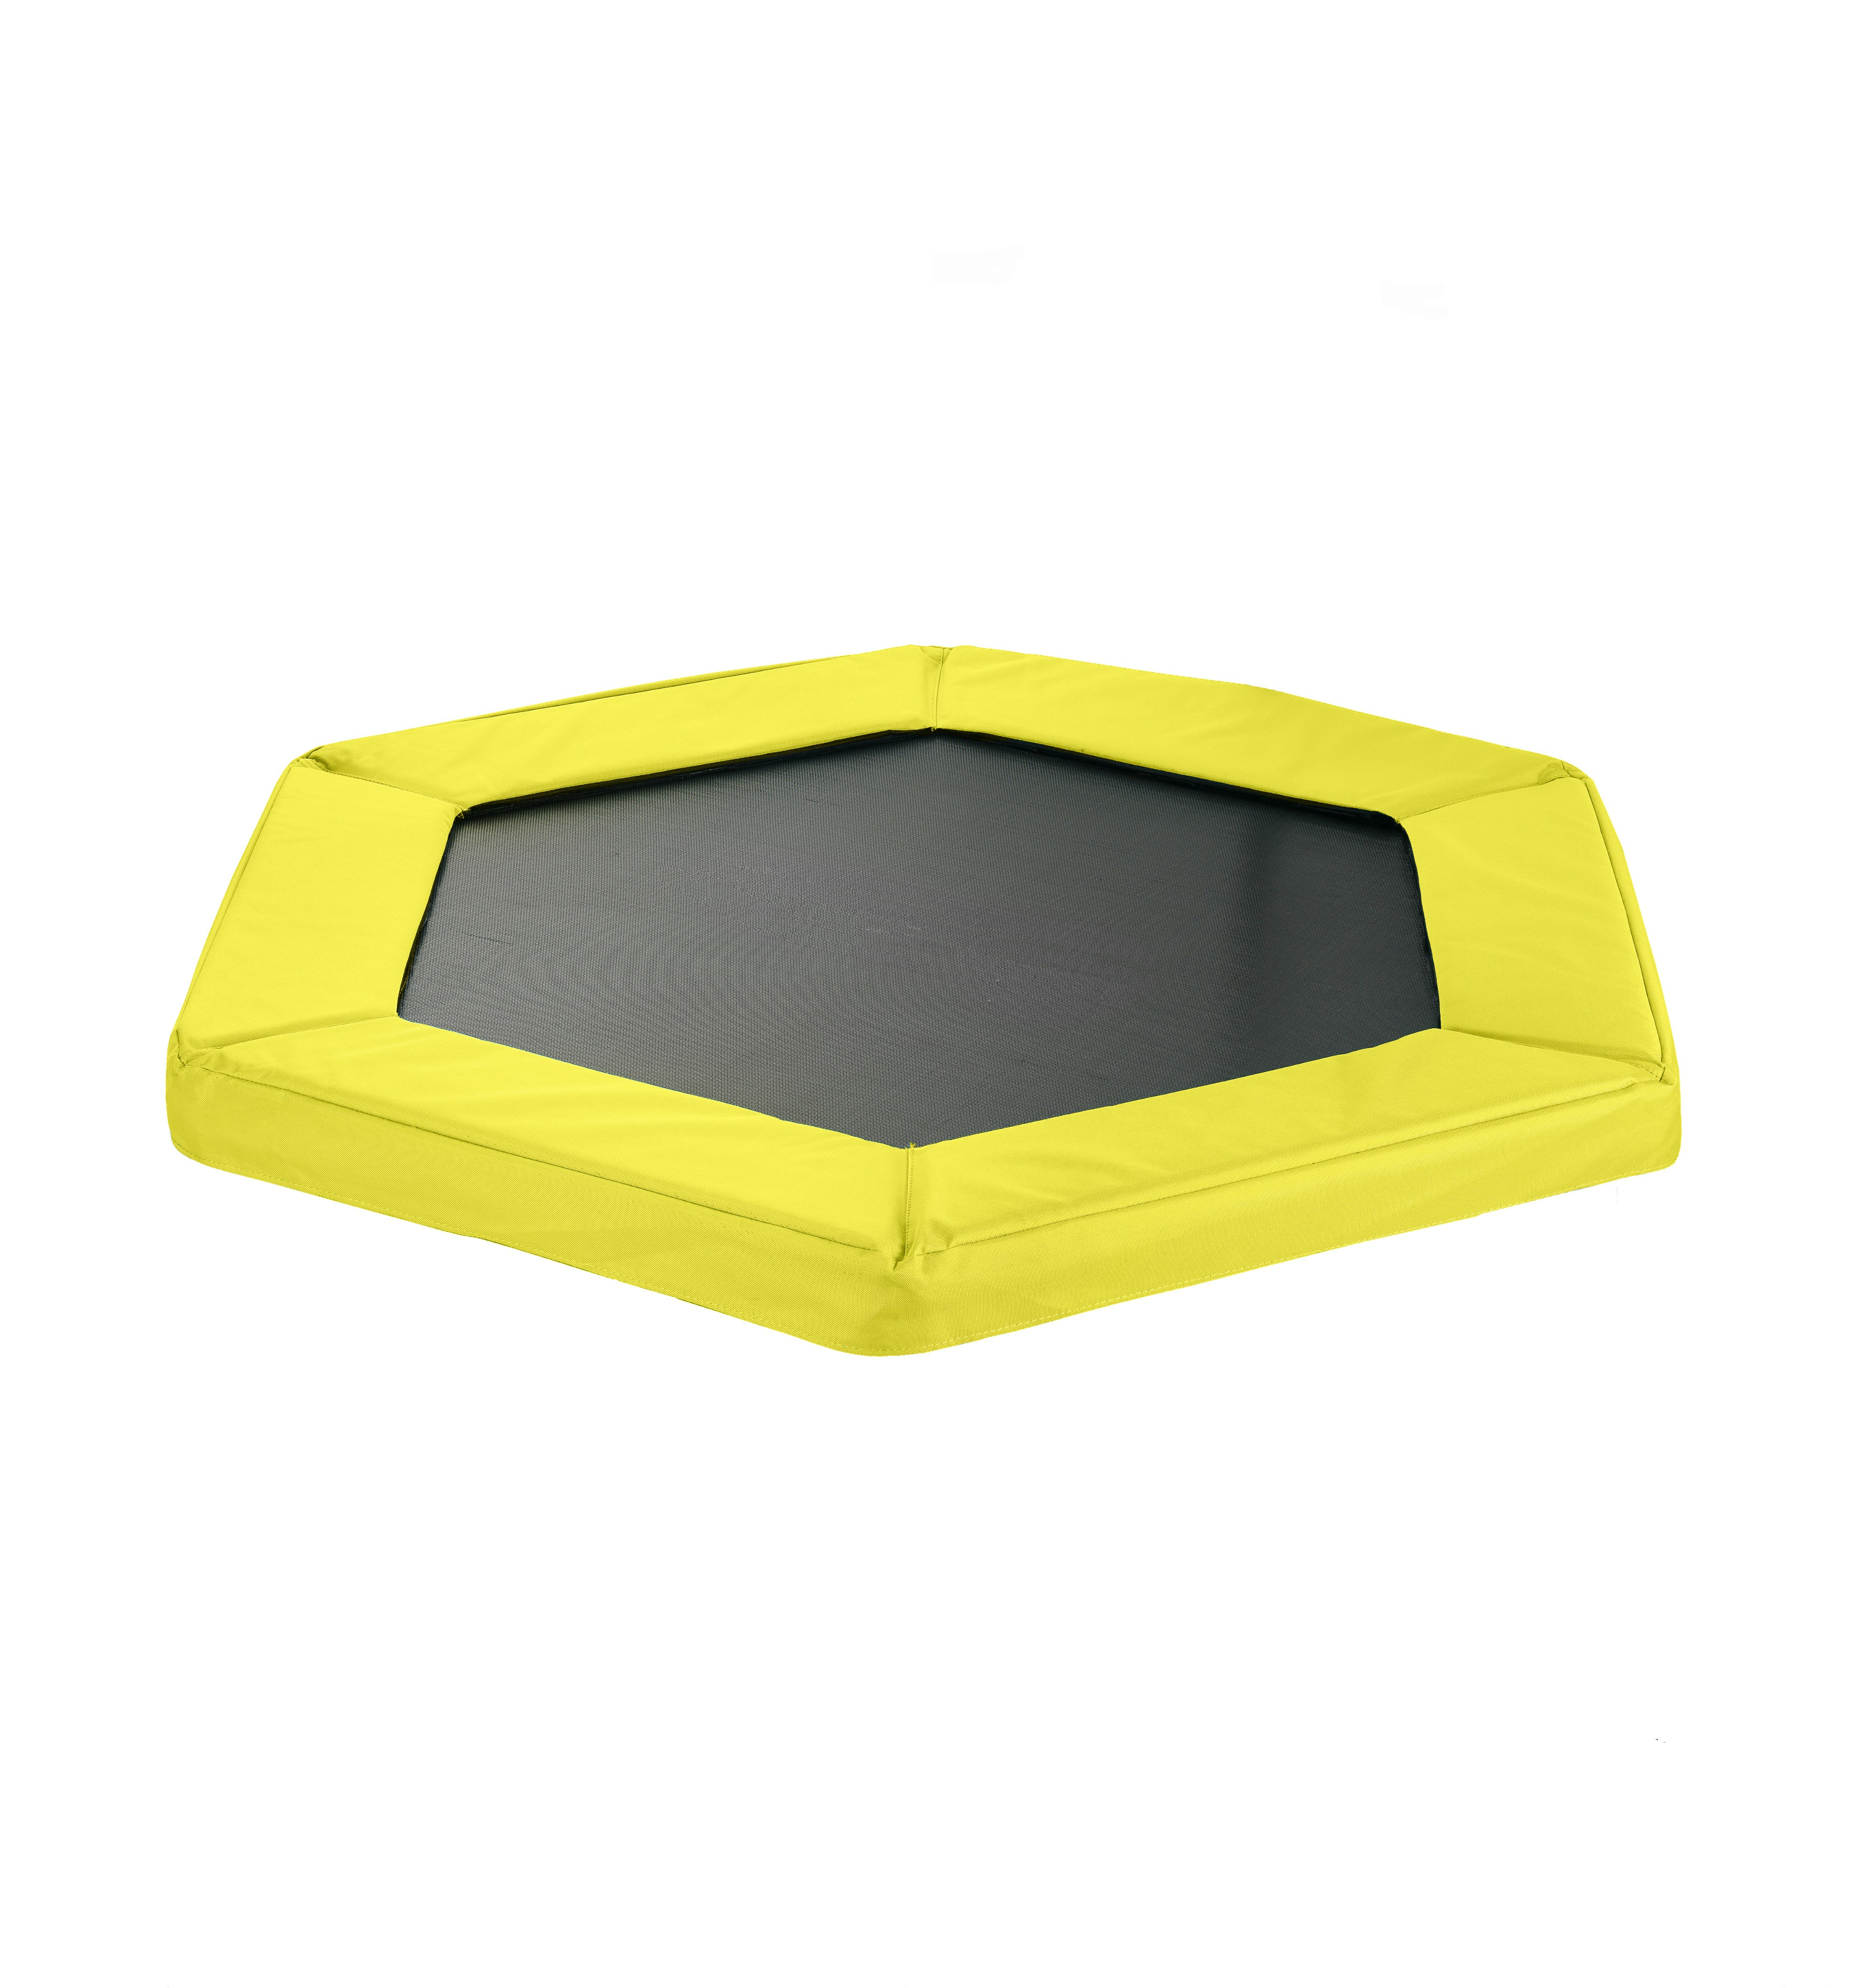 "Safety Pad for 127cm 50"" Hexagonal Rebounder Mini Trampoline - Pantone Yellow Oxford"